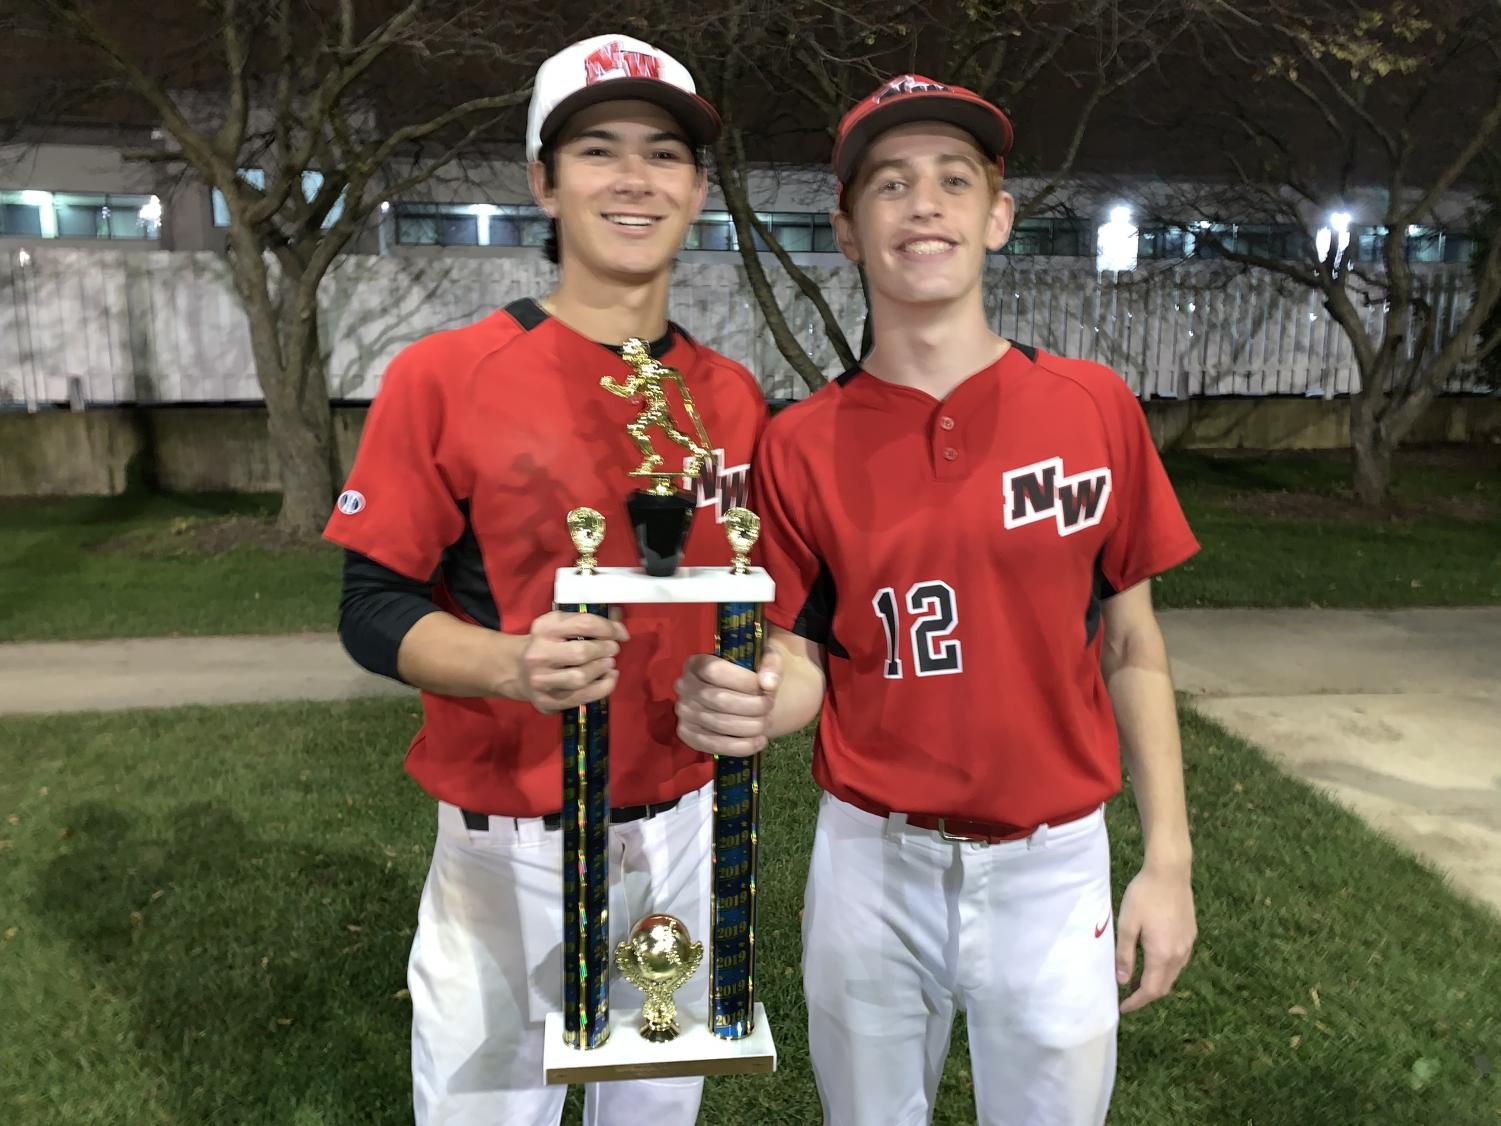 Captains Kyle Gibson and Andrew Pabst hoisting the trophy for the fall league.